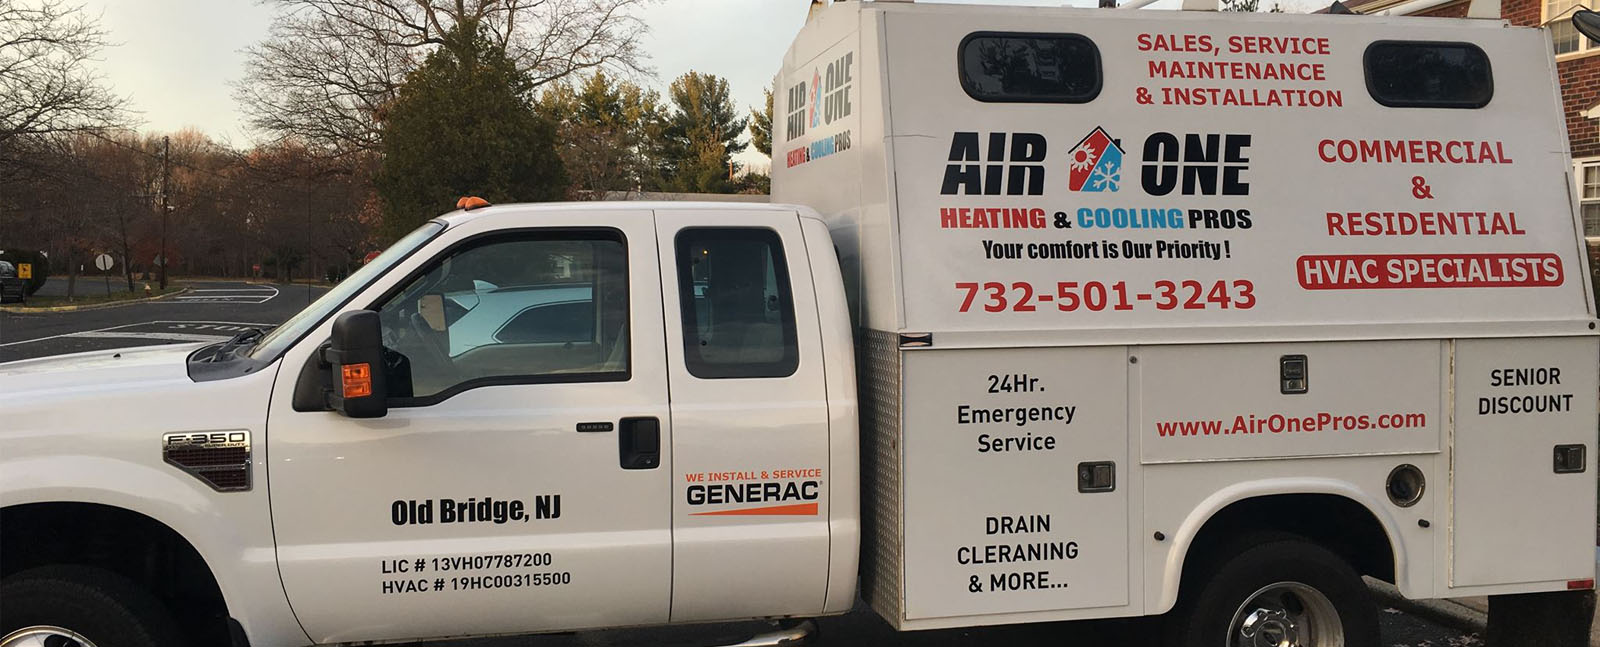 AFFORDABLE HVAC SERVICES IN CENTRAL NJ